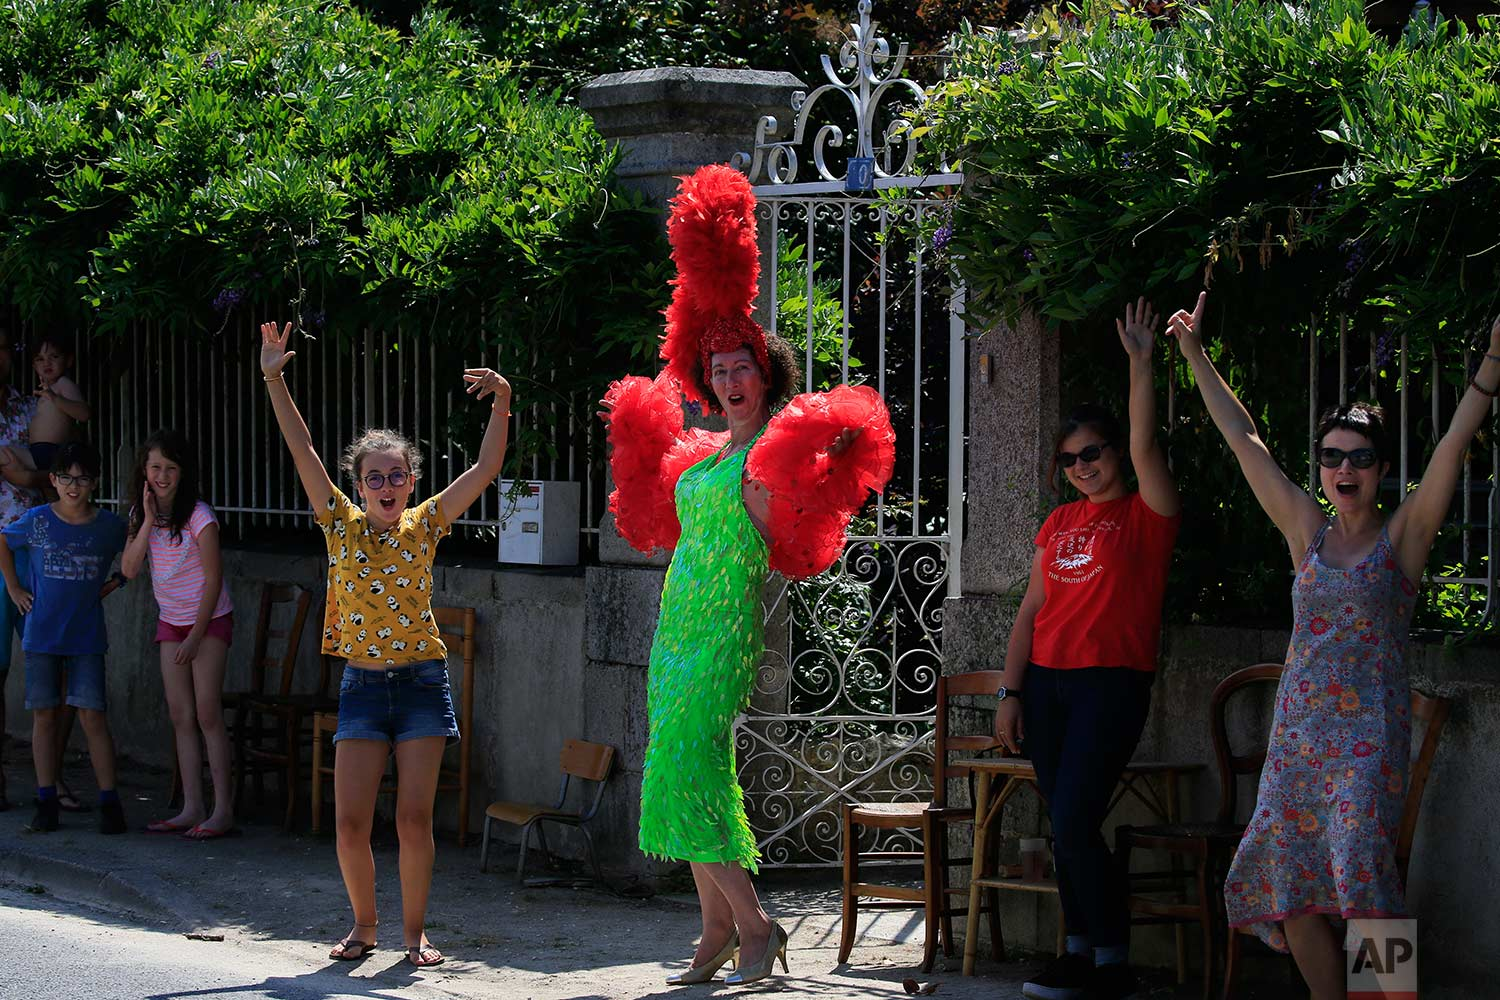 Spectators cheer as they wait for the riders to pass during the second stage of the Tour de France cycling race over 182.5 kilometers (113.4 miles) with start in Mouilleron-Saint-Germain and finish in La Roche Sur-Yon, France, Sunday, July 8, 2018. (AP Photo/Peter Dejong)